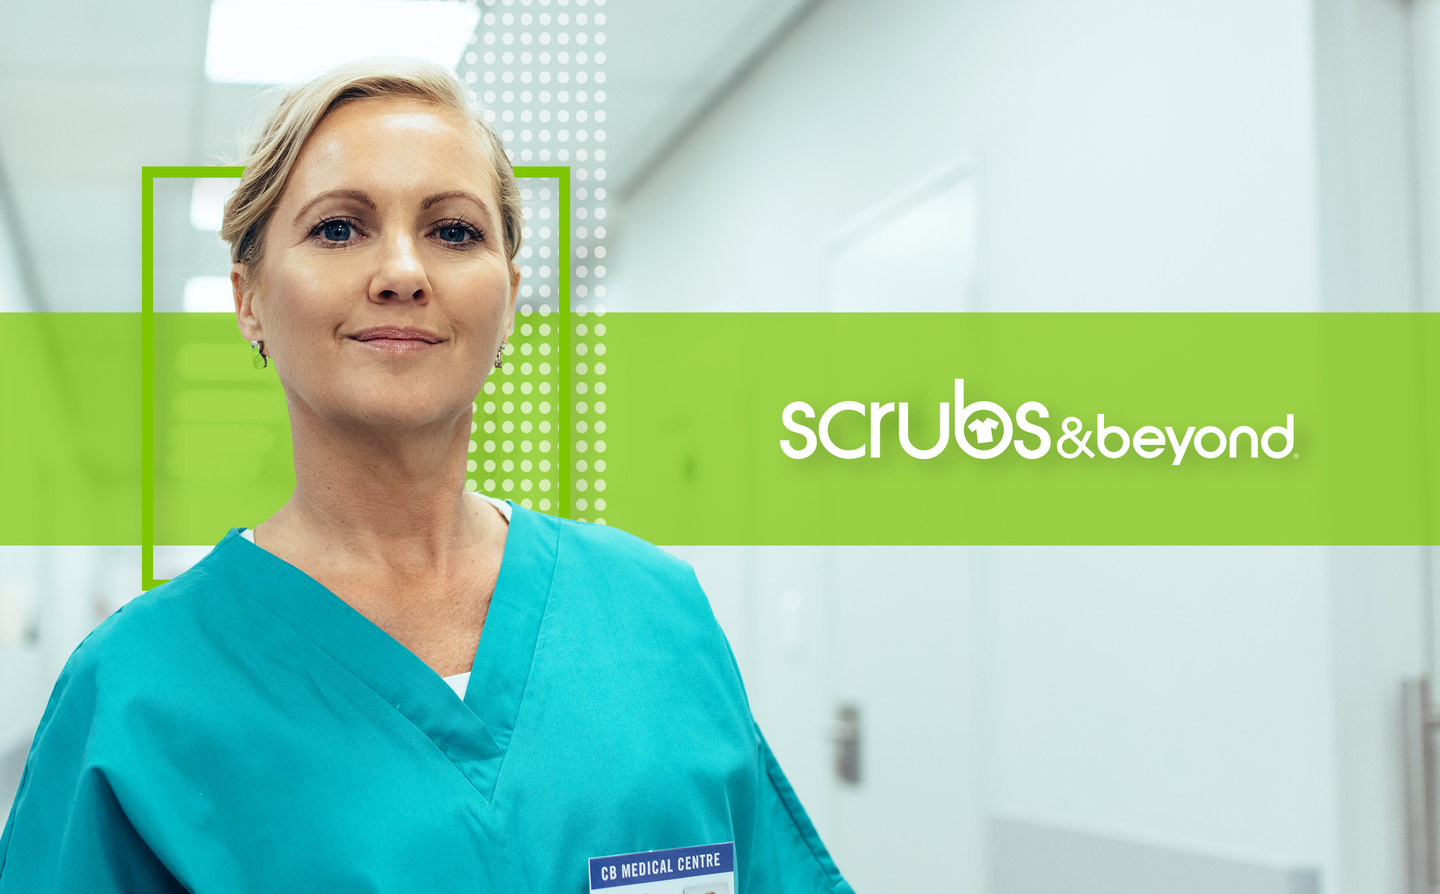 Scrubs & Beyond achieves an 18.6% conversion rate increase testing TrustedSite